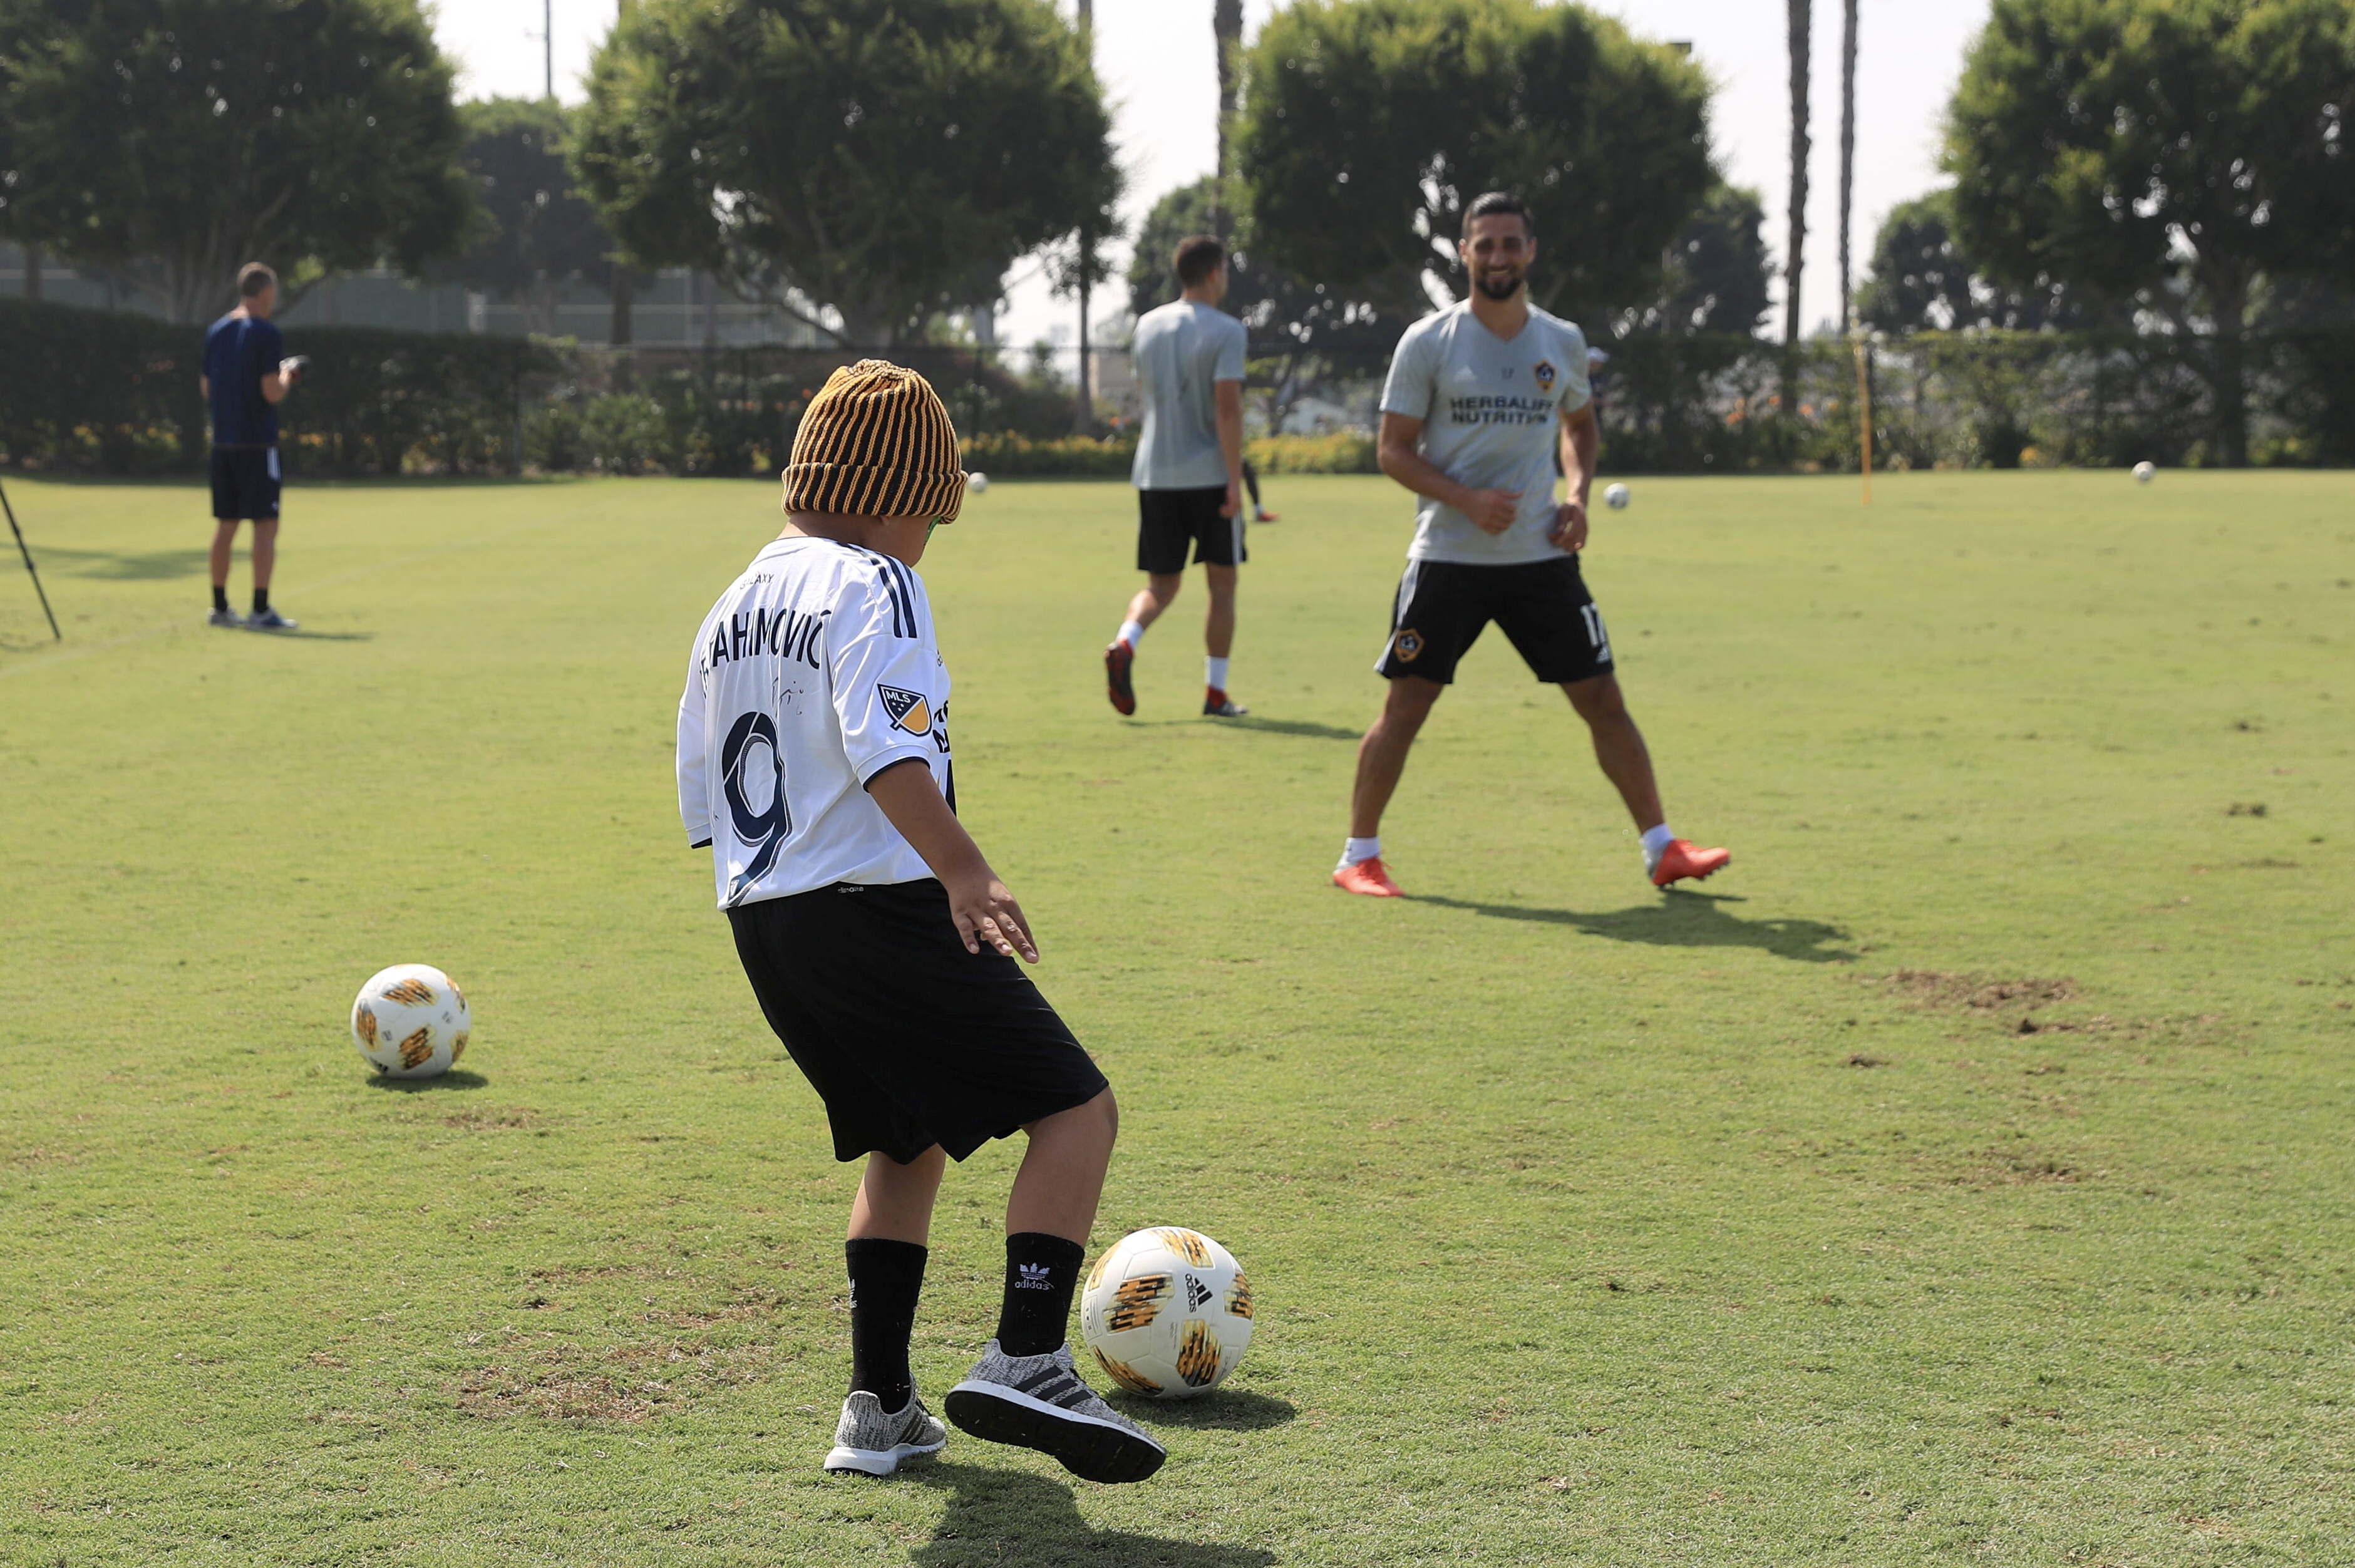 8-year-old Ethan Castro meets Zlatan Ibrahimovic and the LA